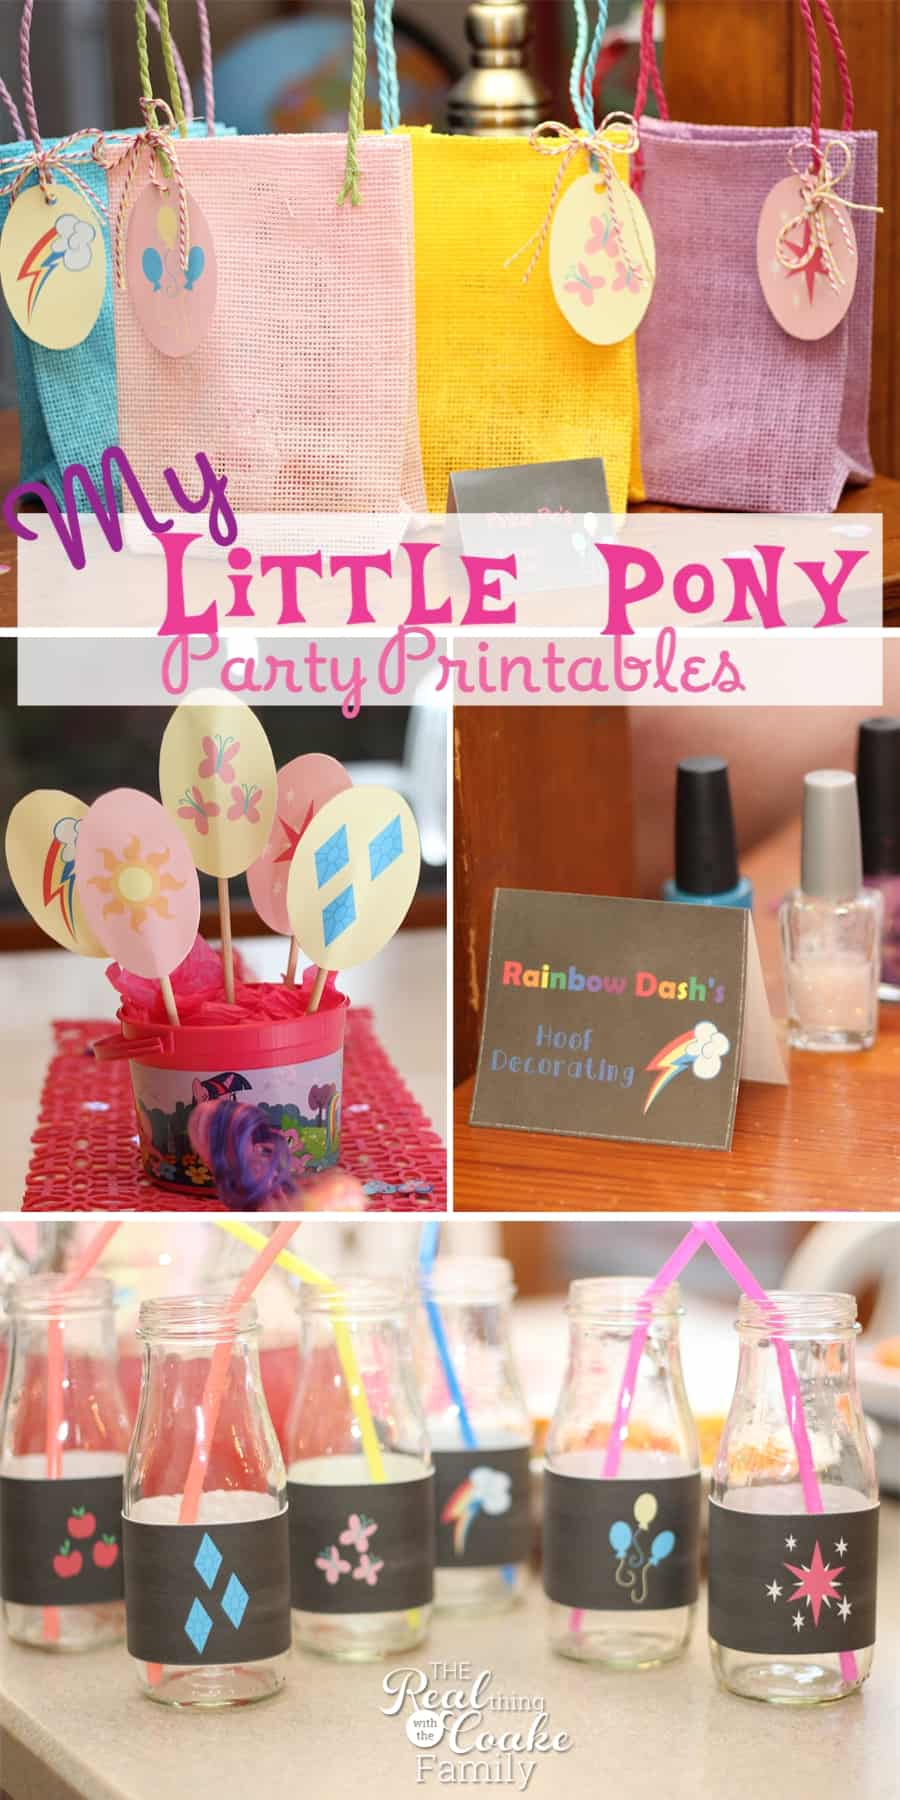 My Little Pony Birthday Party adorable printables. Perfect printable pack to make a the party cute and quick. #MLP #Birthday #Printable #MyLittlePony #Party